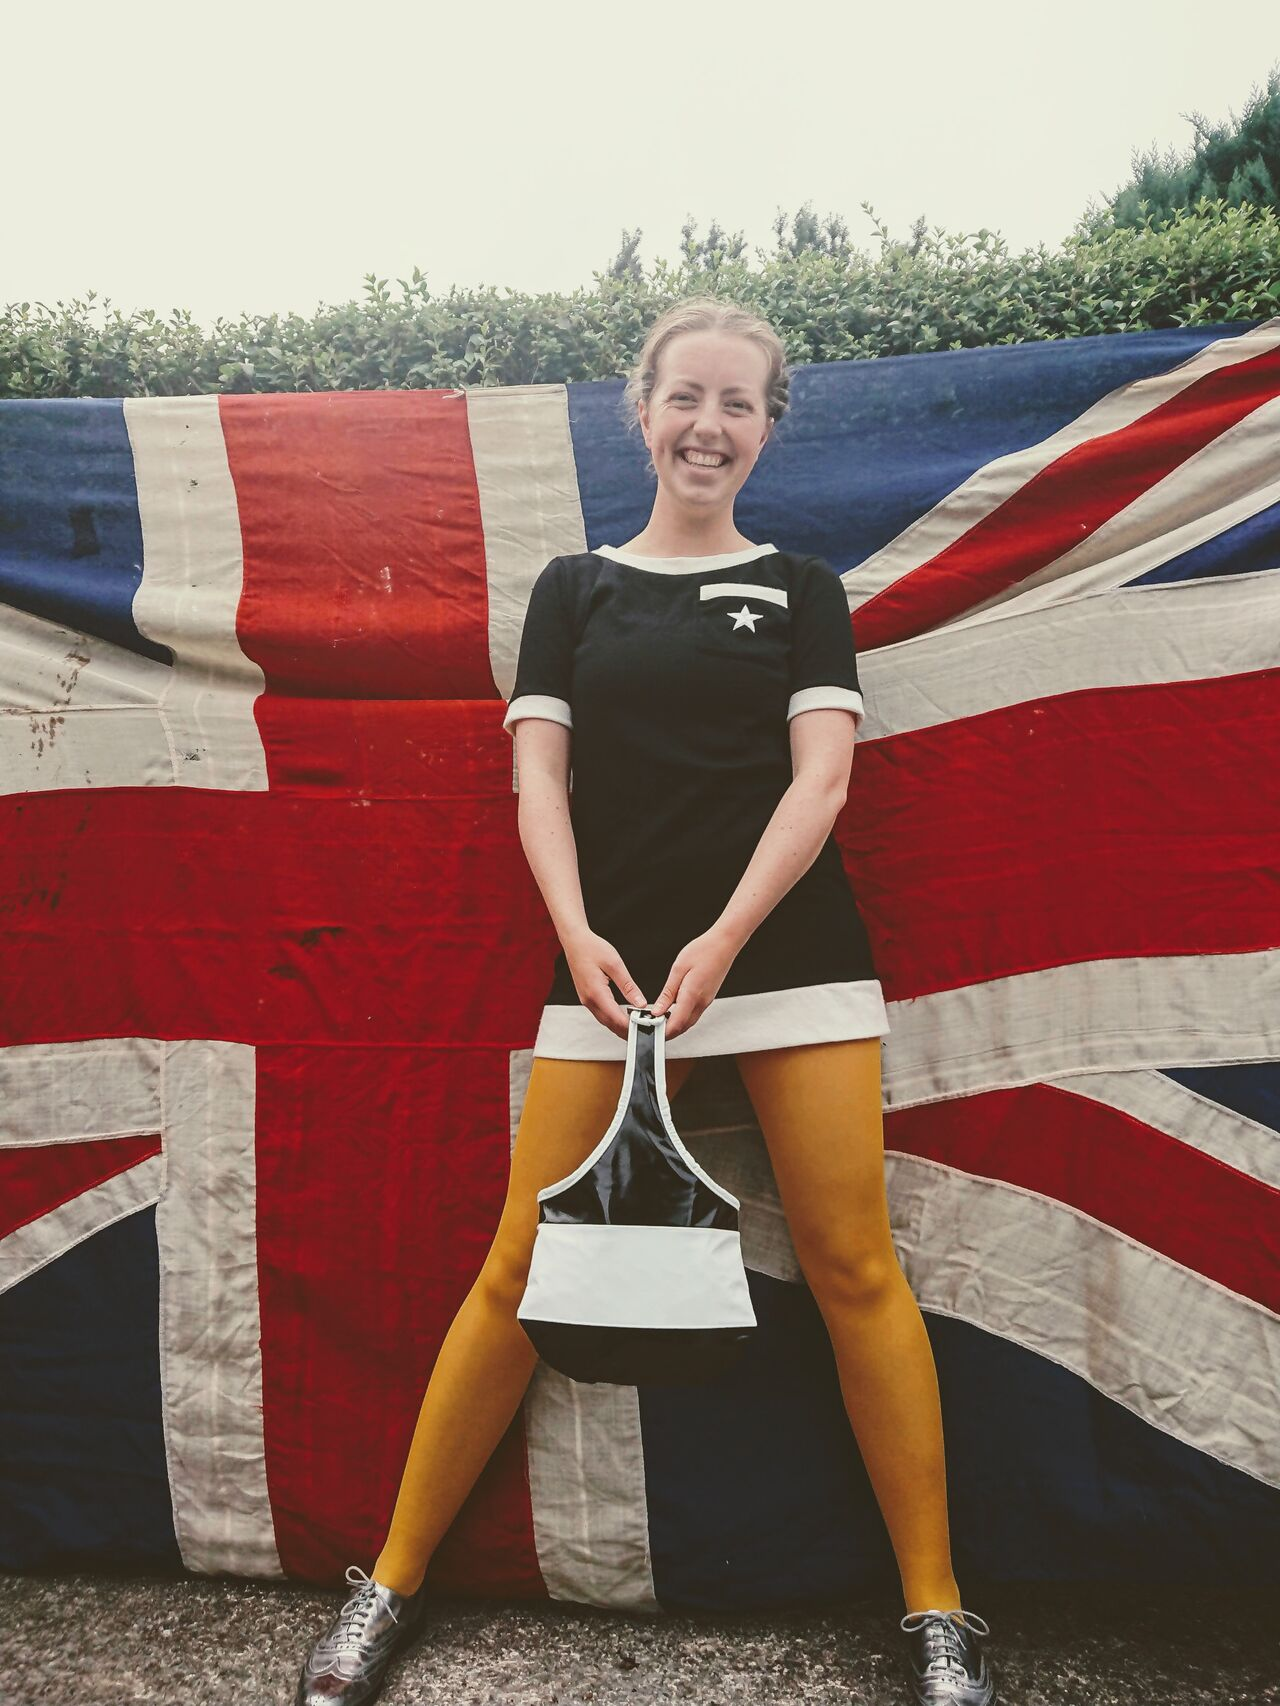 A model wears reproduction Quant attire in front of a union jack flag. The outfit is a black and white minidress and the model is holding a PVC handbag too.